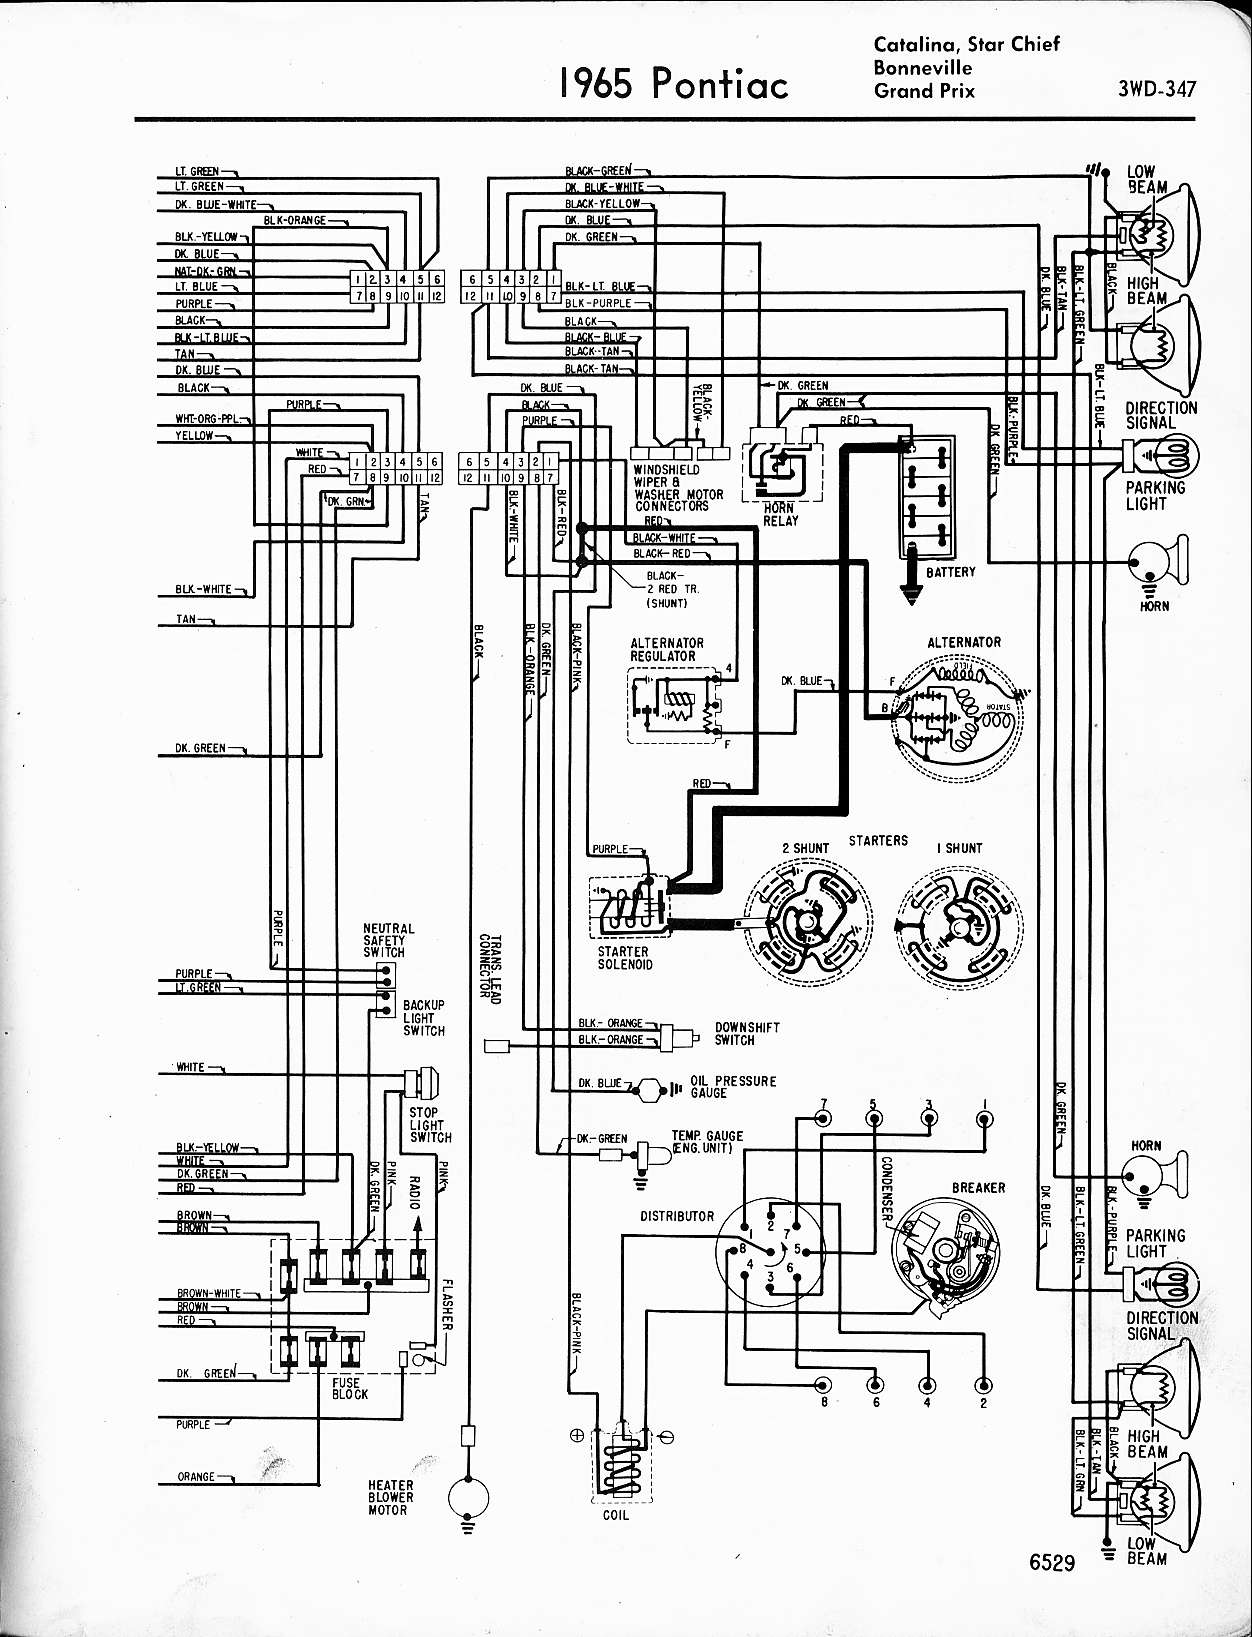 2005 pontiac grand prix wiring diagrams